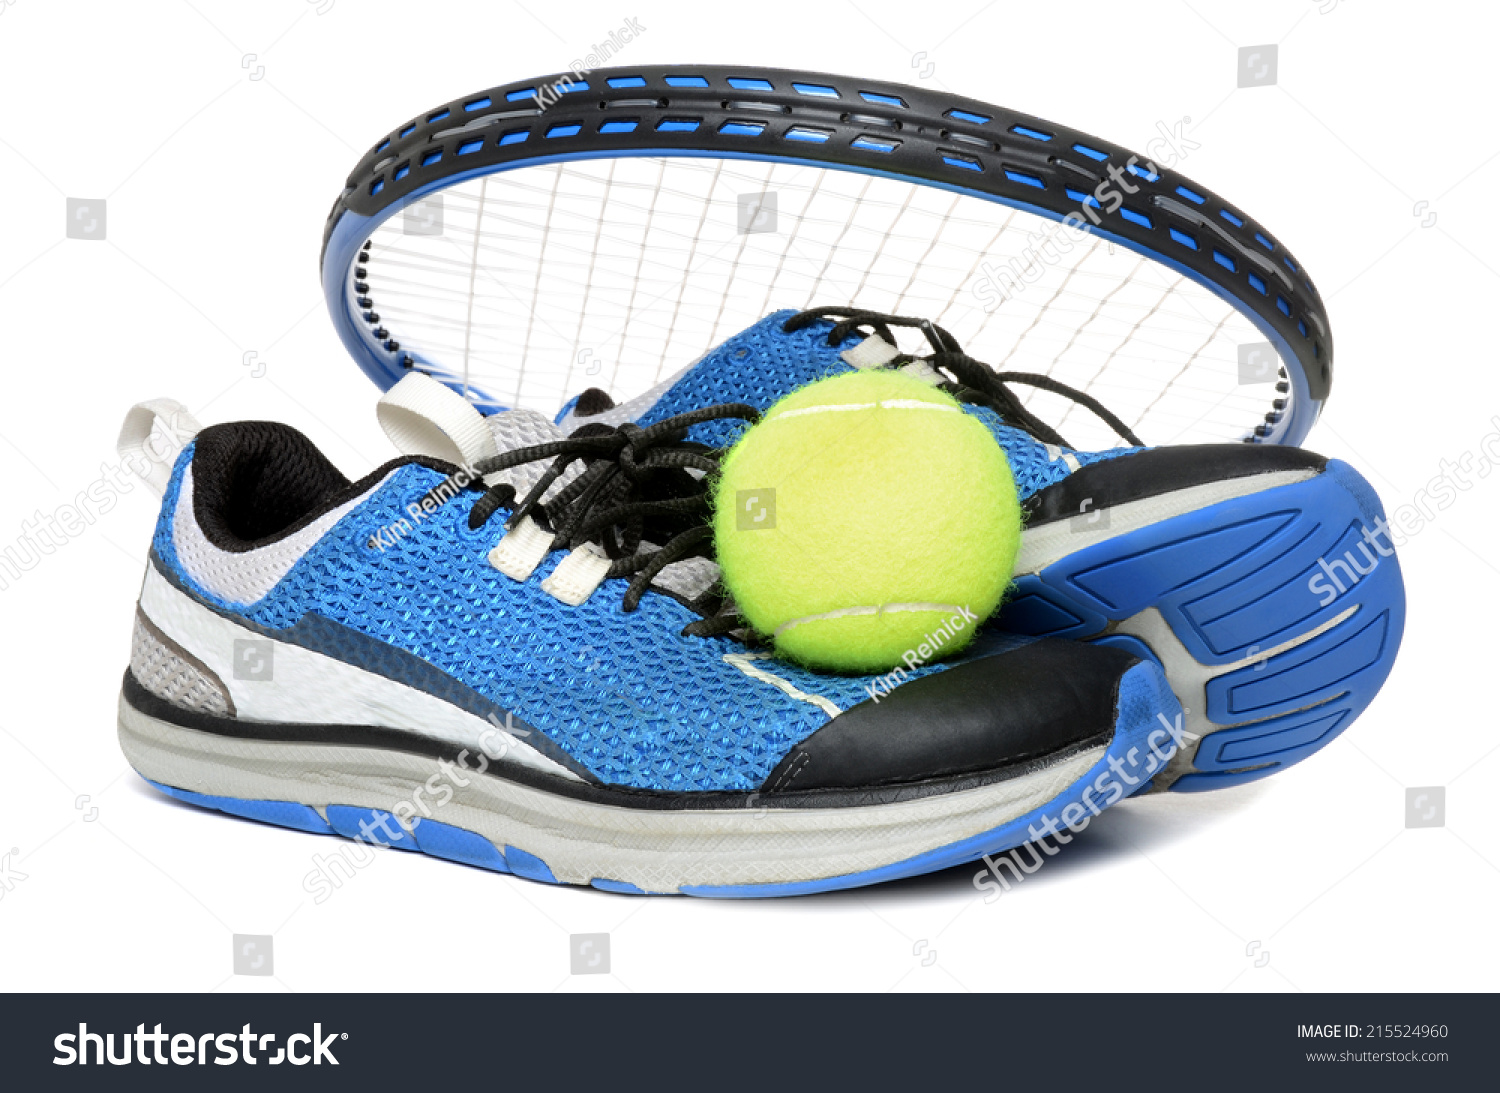 tennis racket shoes isolated on stock photo 215524960